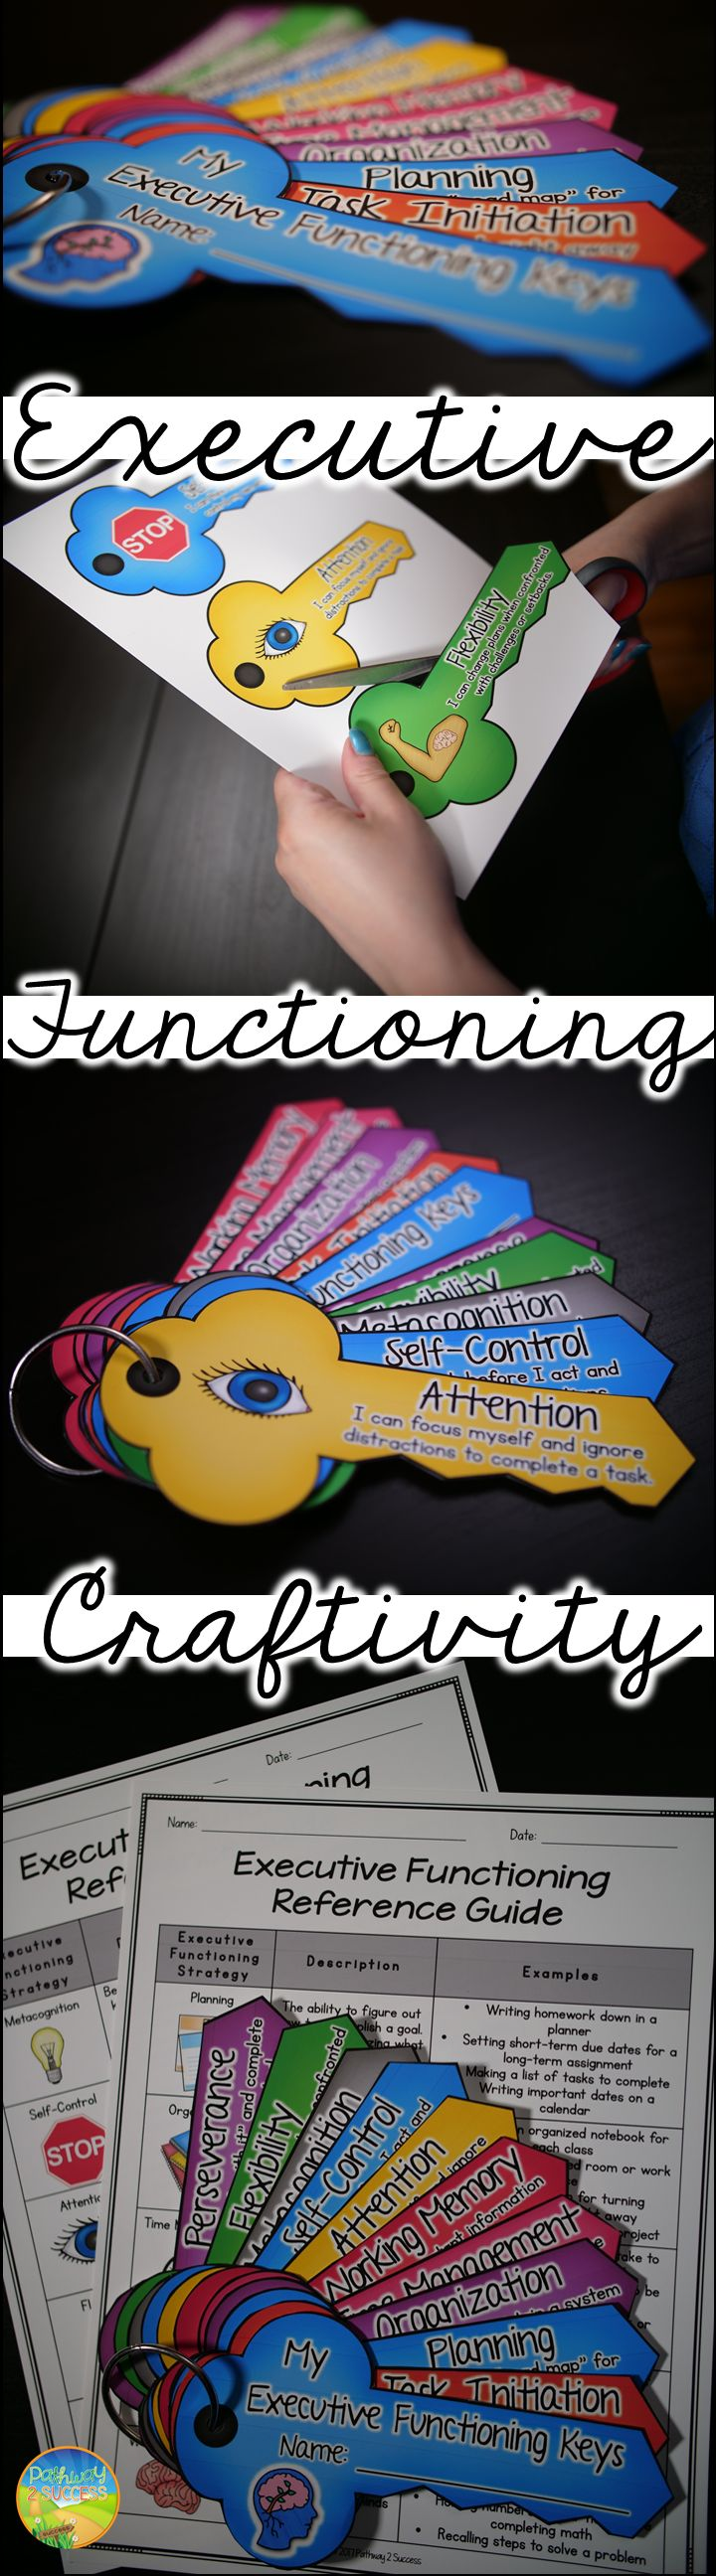 Executive functioning craft to help teach and practice skills.